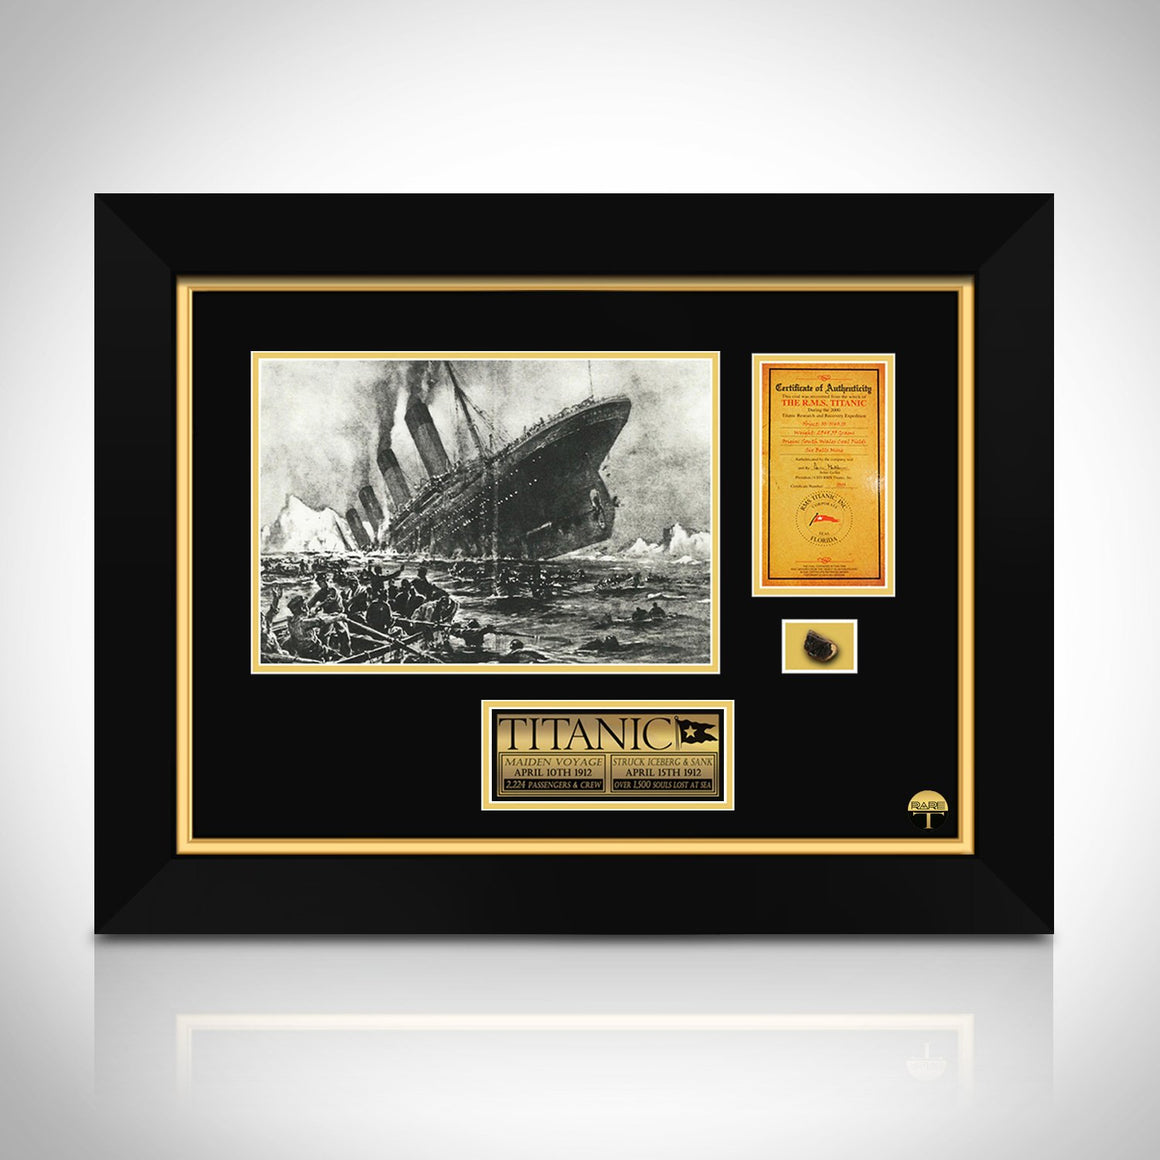 Authentic TITANIC COAL- Hand-Signed Specimen by CEO of RMS Titanic Inc Custom Frame